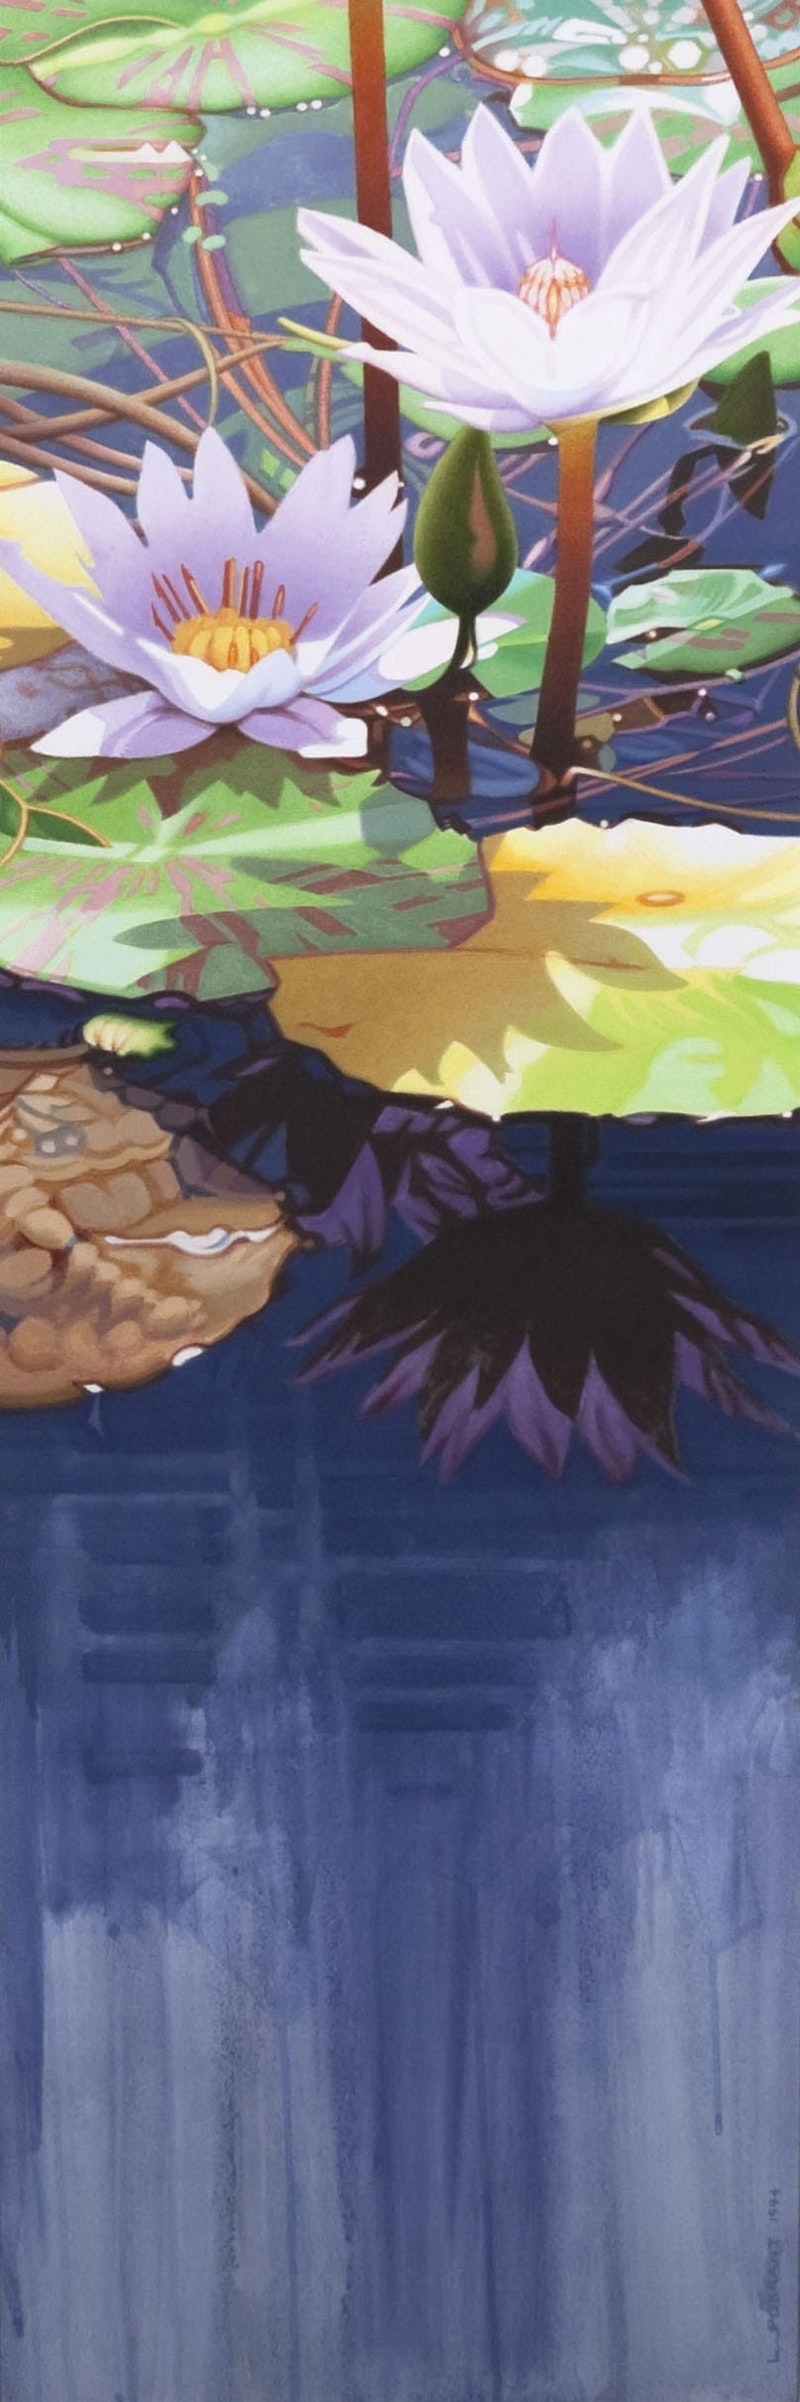 Two Waterlilies Image 1